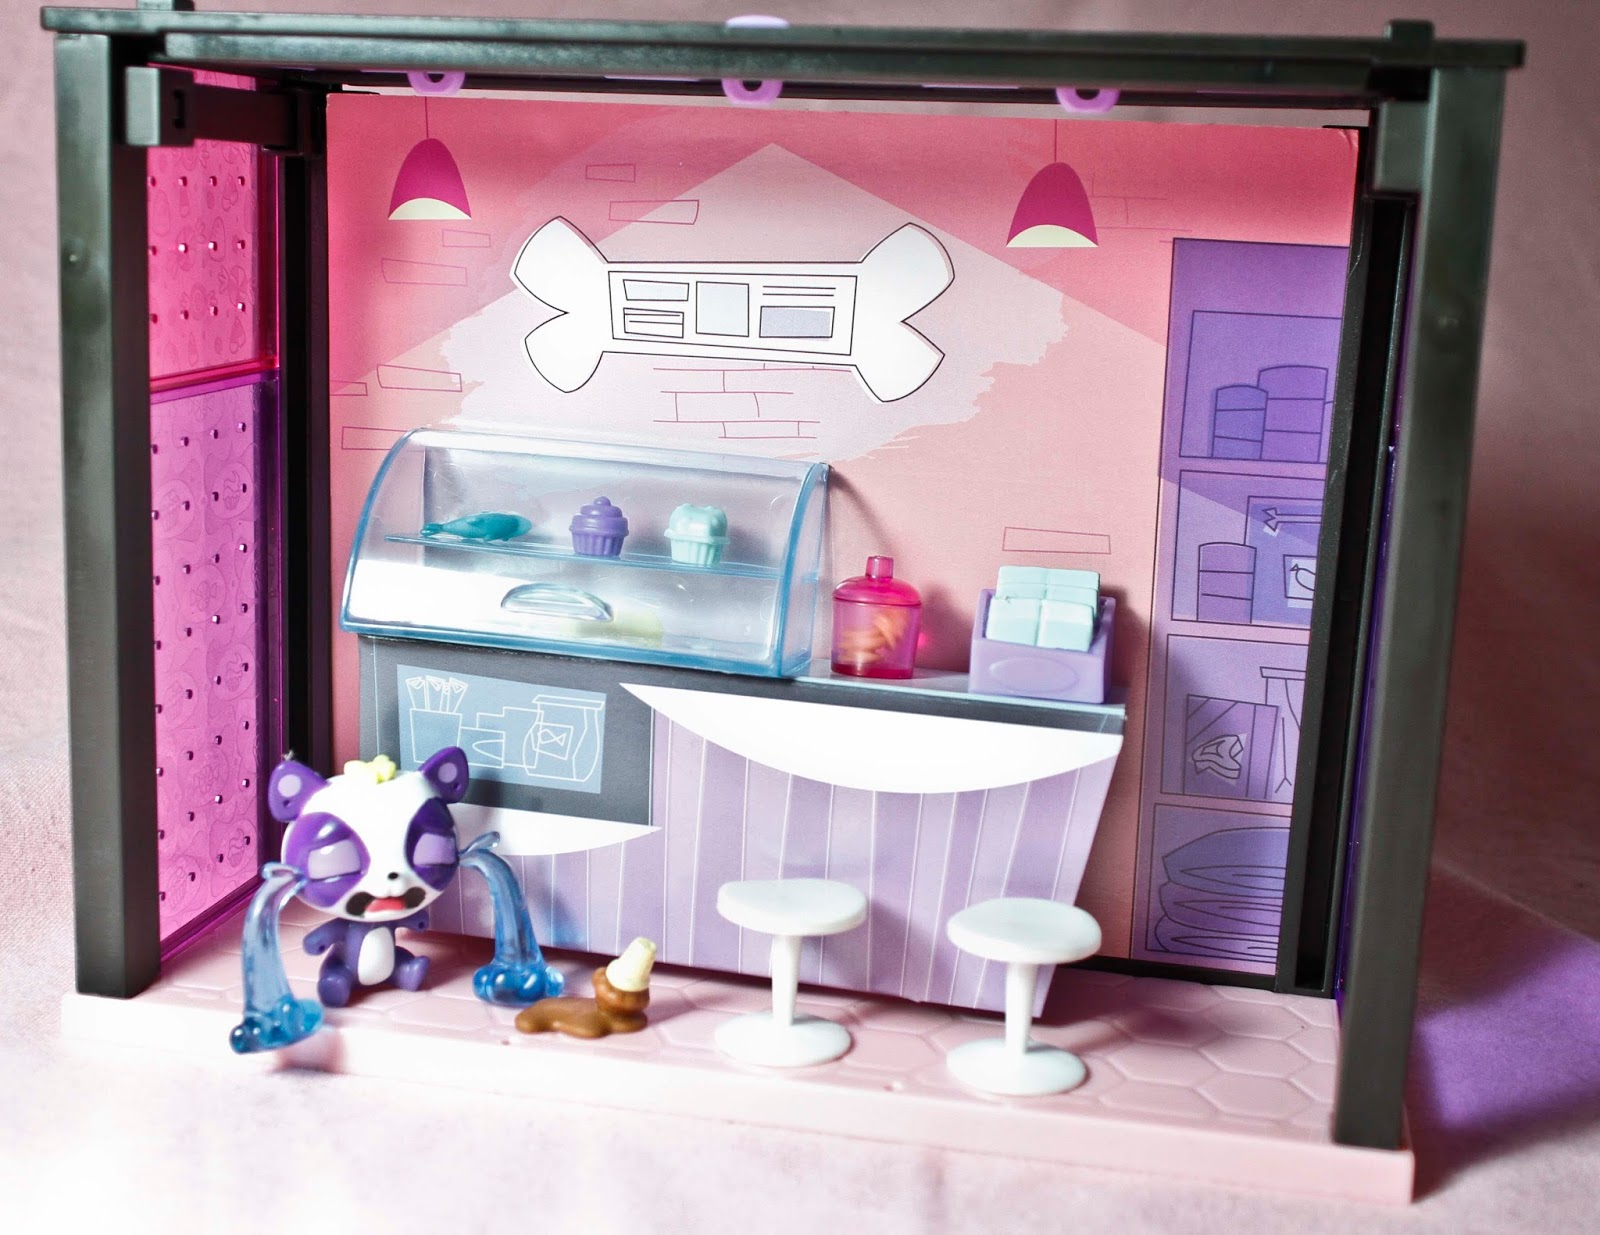 littlest pet shop yummy treats bar with pet and accessories fully set up and ready to play